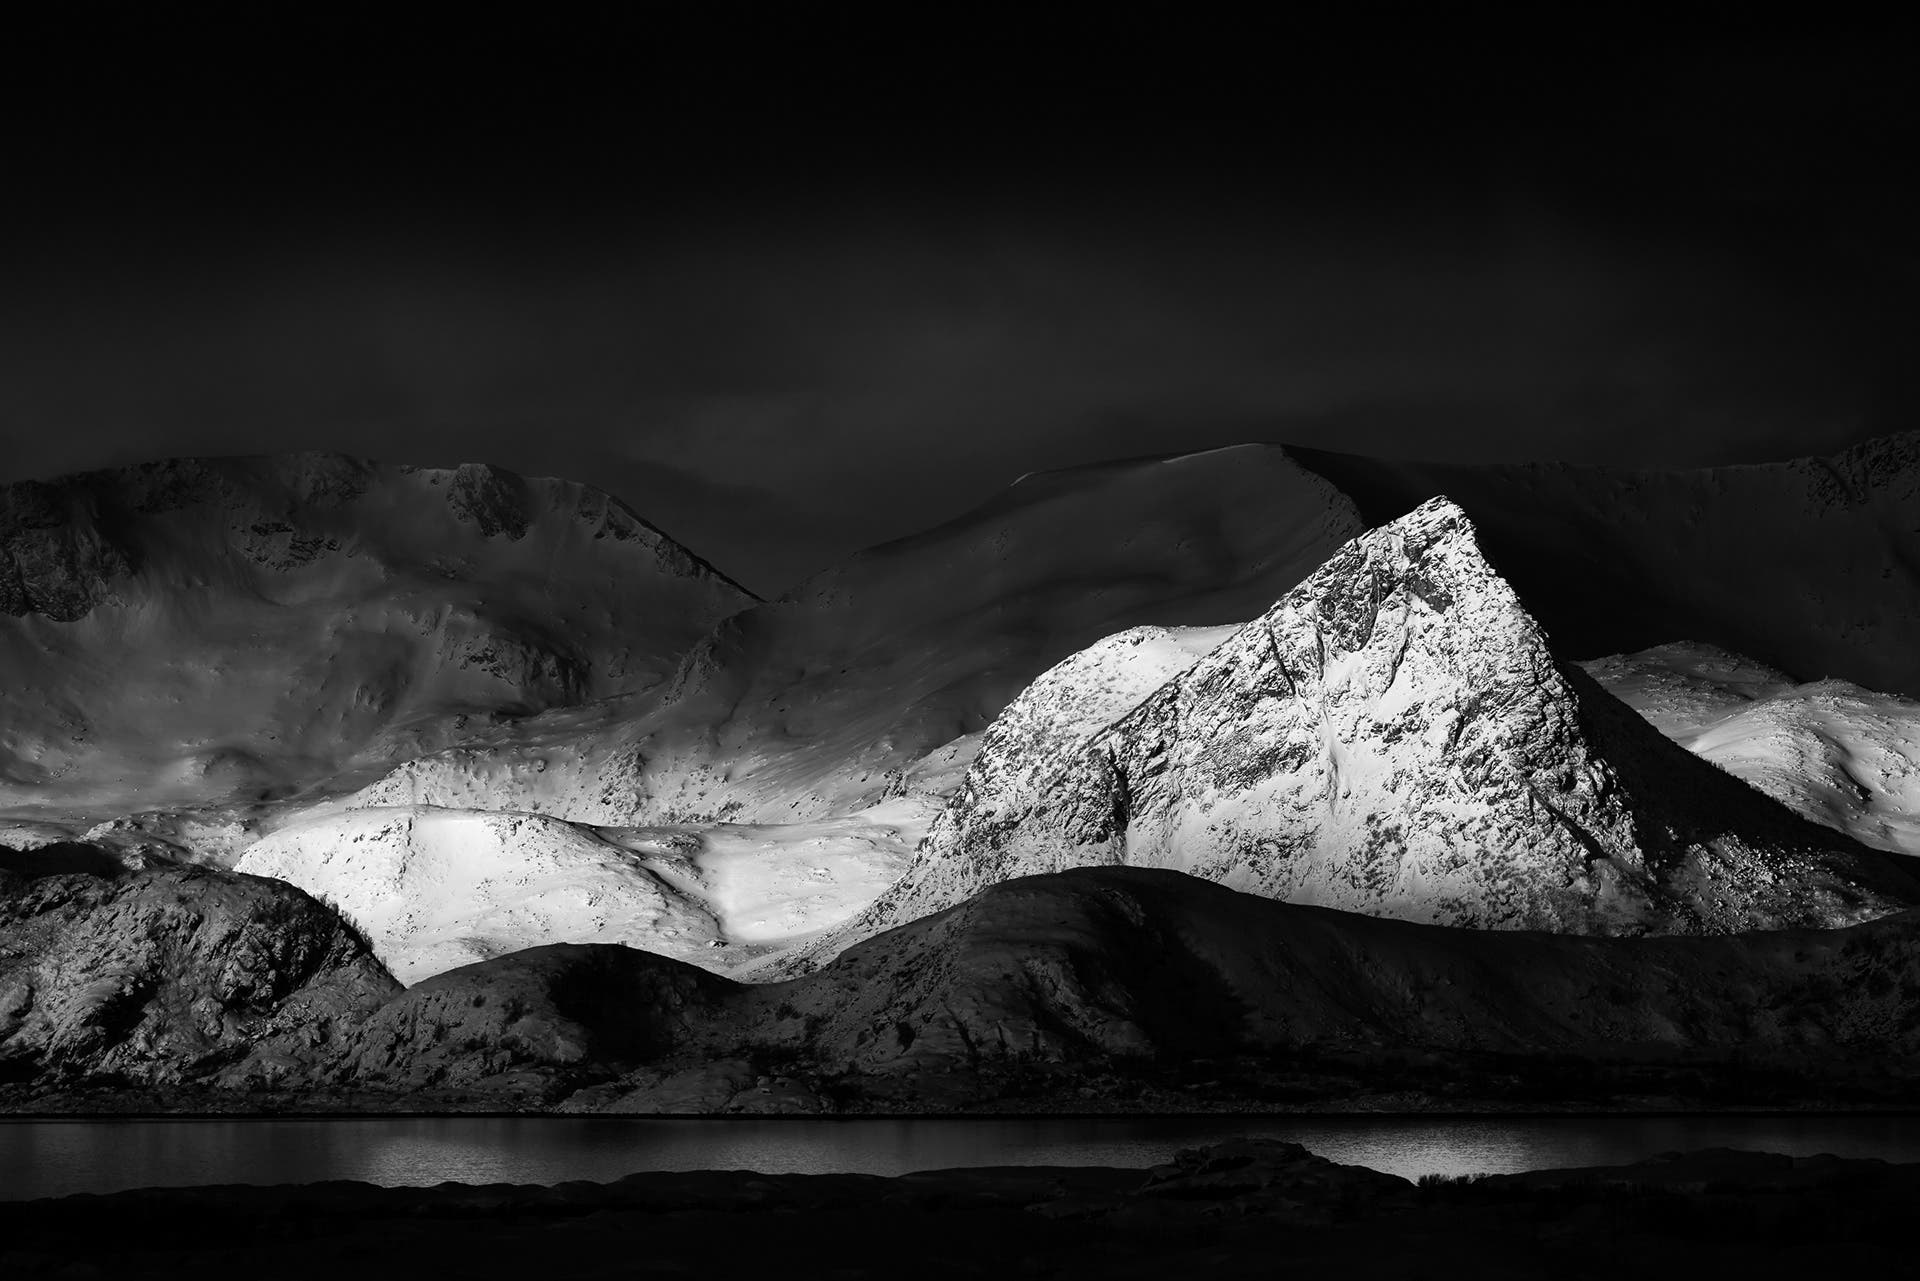 Damien Guiot Showcases Gorgeous Contrasts in Monochrome Landscapes